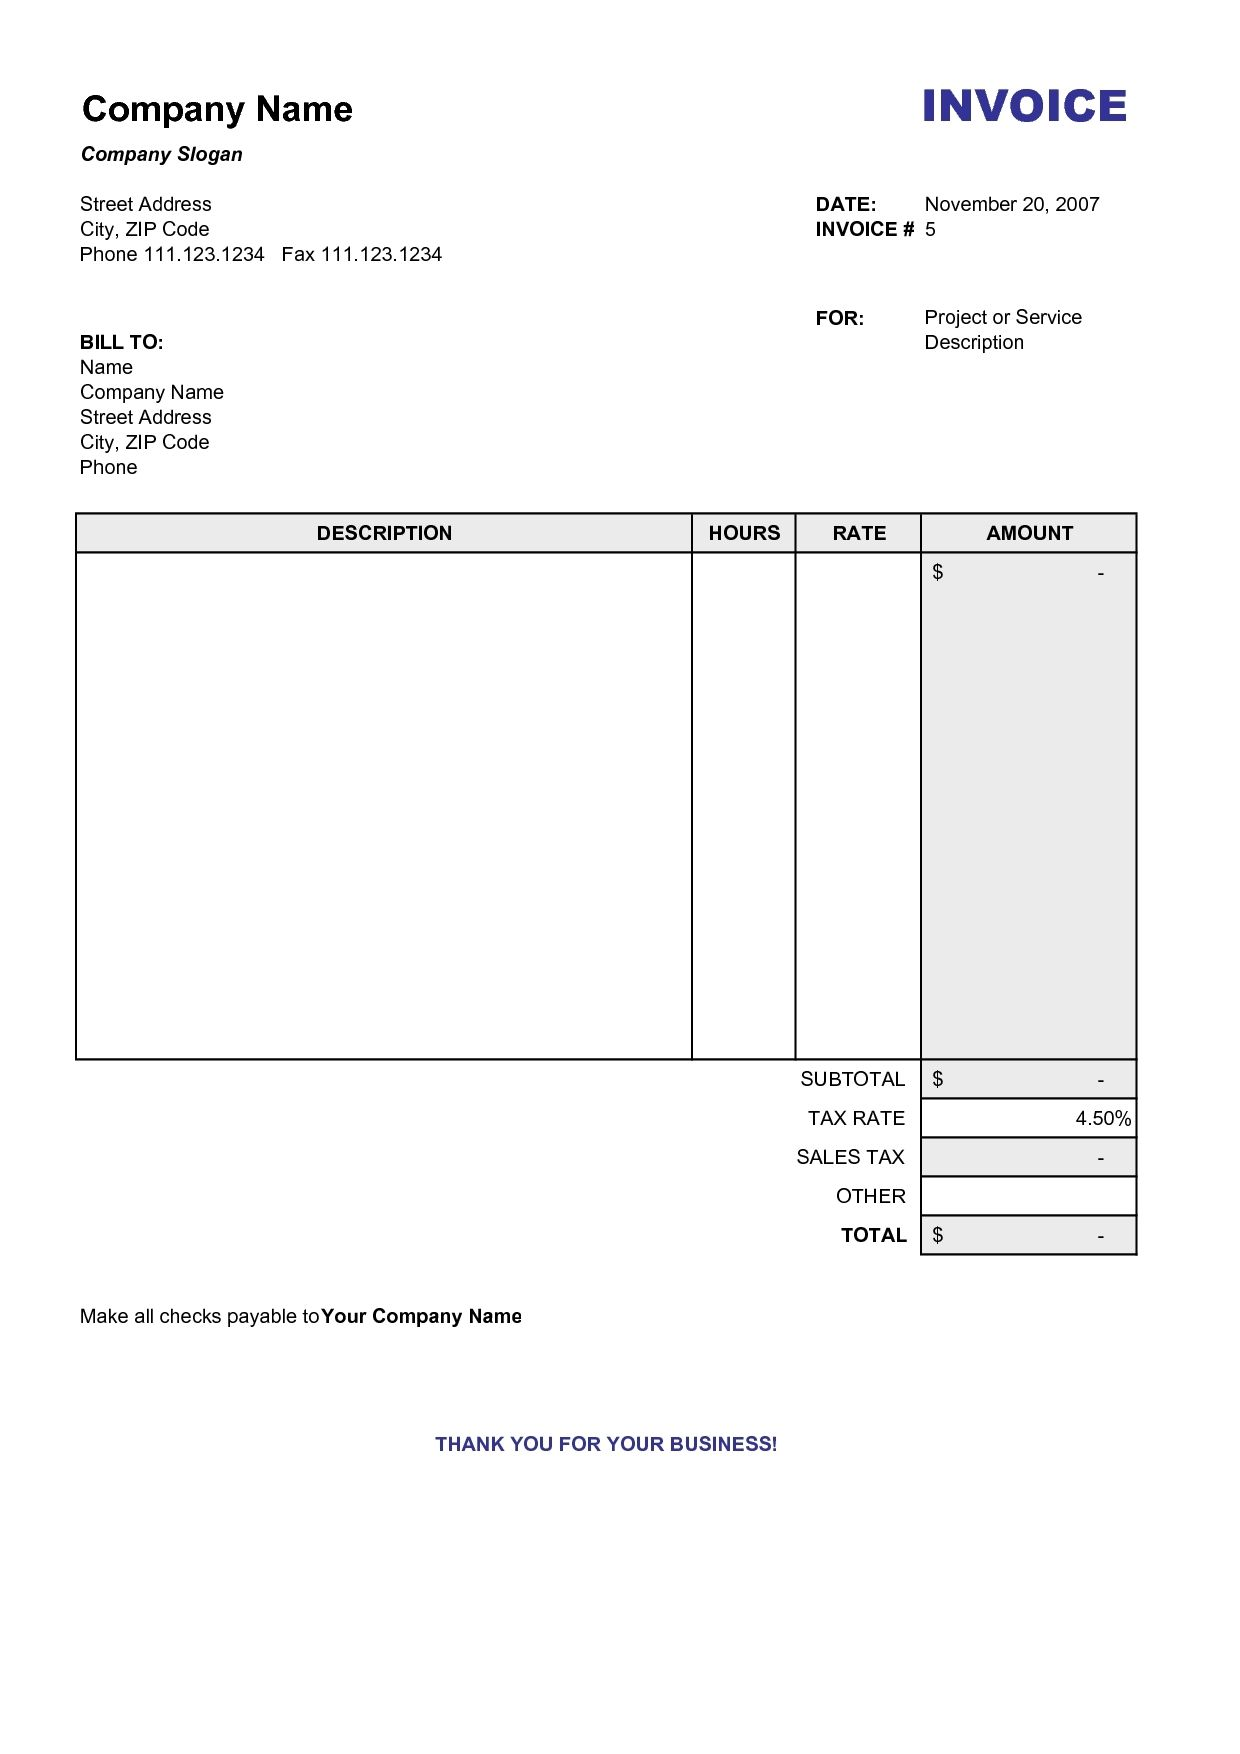 Copy Of A Blank Invoice Invoice Template Free Copy Of Blank - Free invoicing system for service business